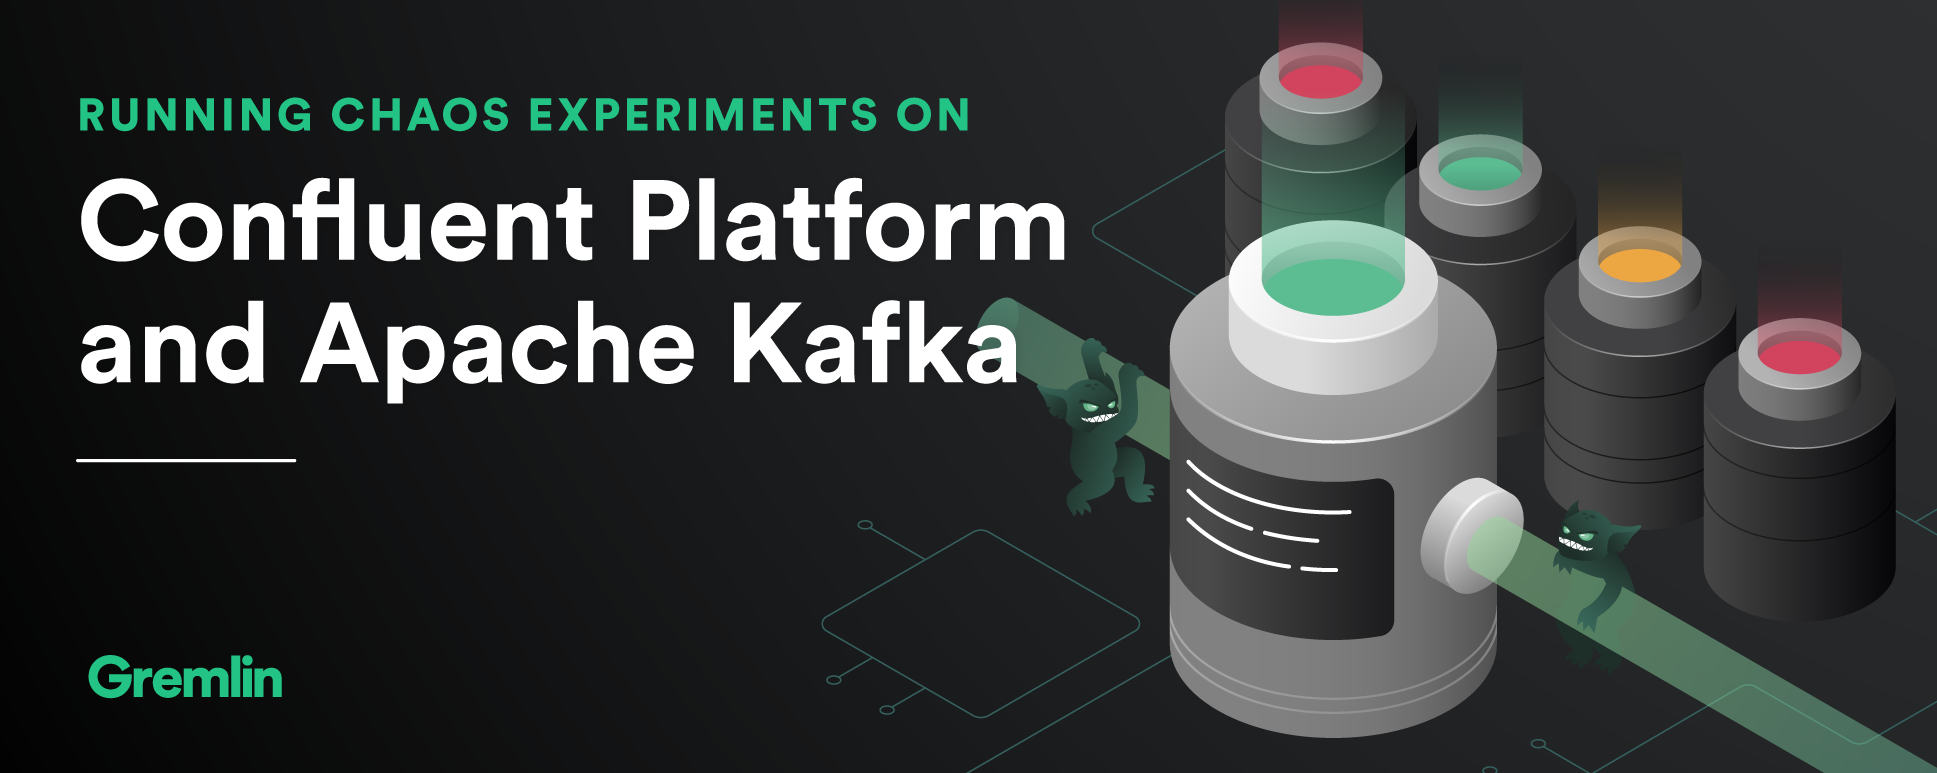 Running Chaos Experiments on Confluent Platform and Apache Kafka